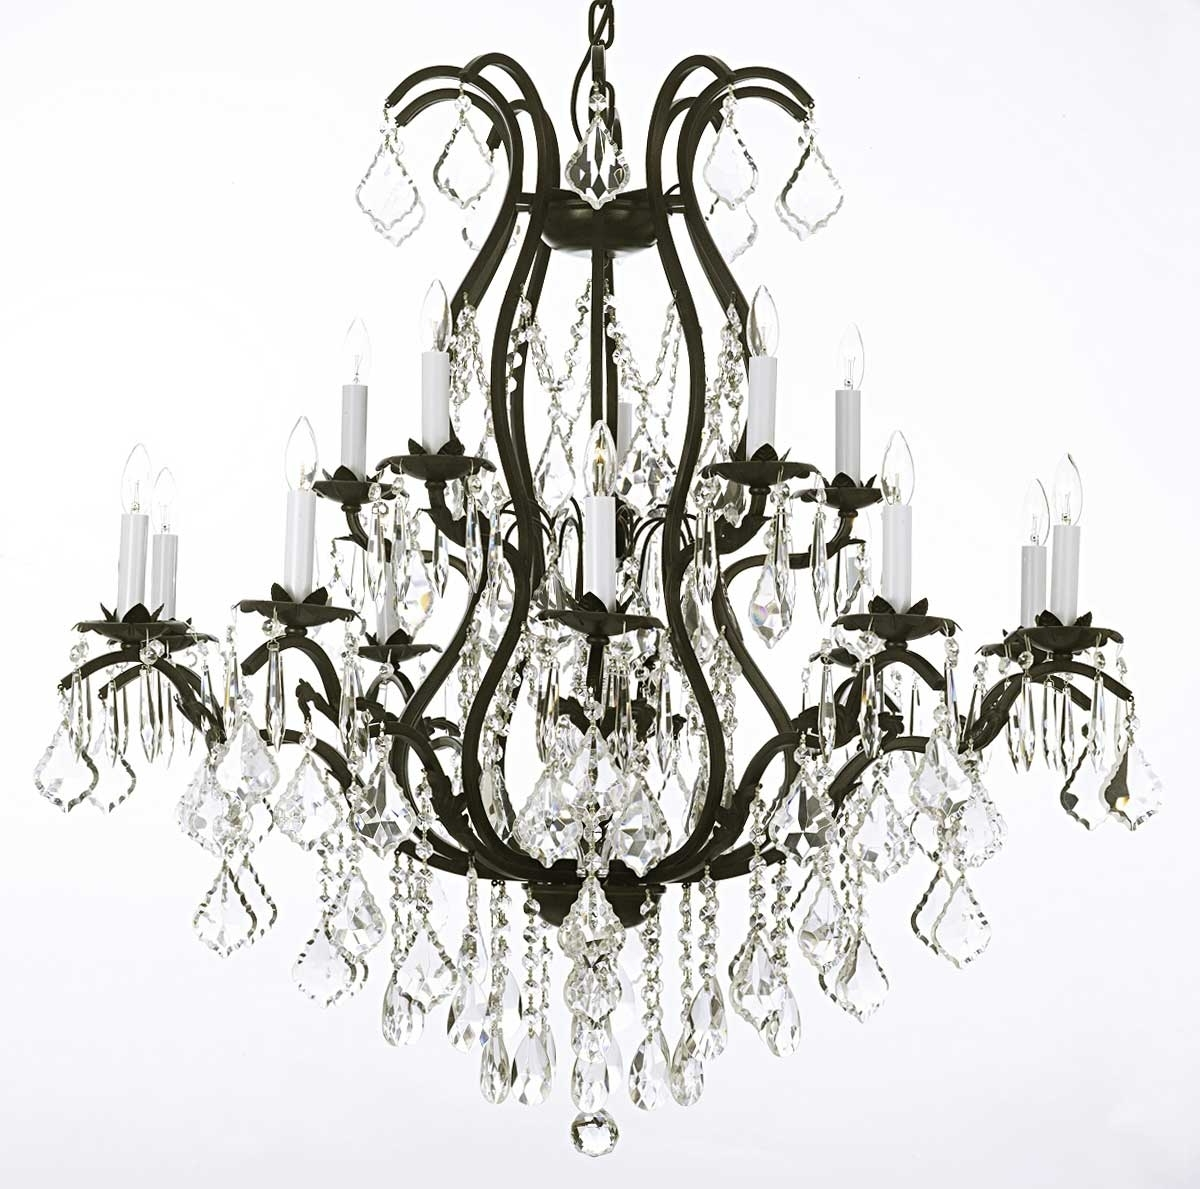 Most Popular Modern Wrought Iron Chandeliers Intended For Modern Black Wrought Iron And Crystal Chandeliers Plus Lamp Holder (View 14 of 15)